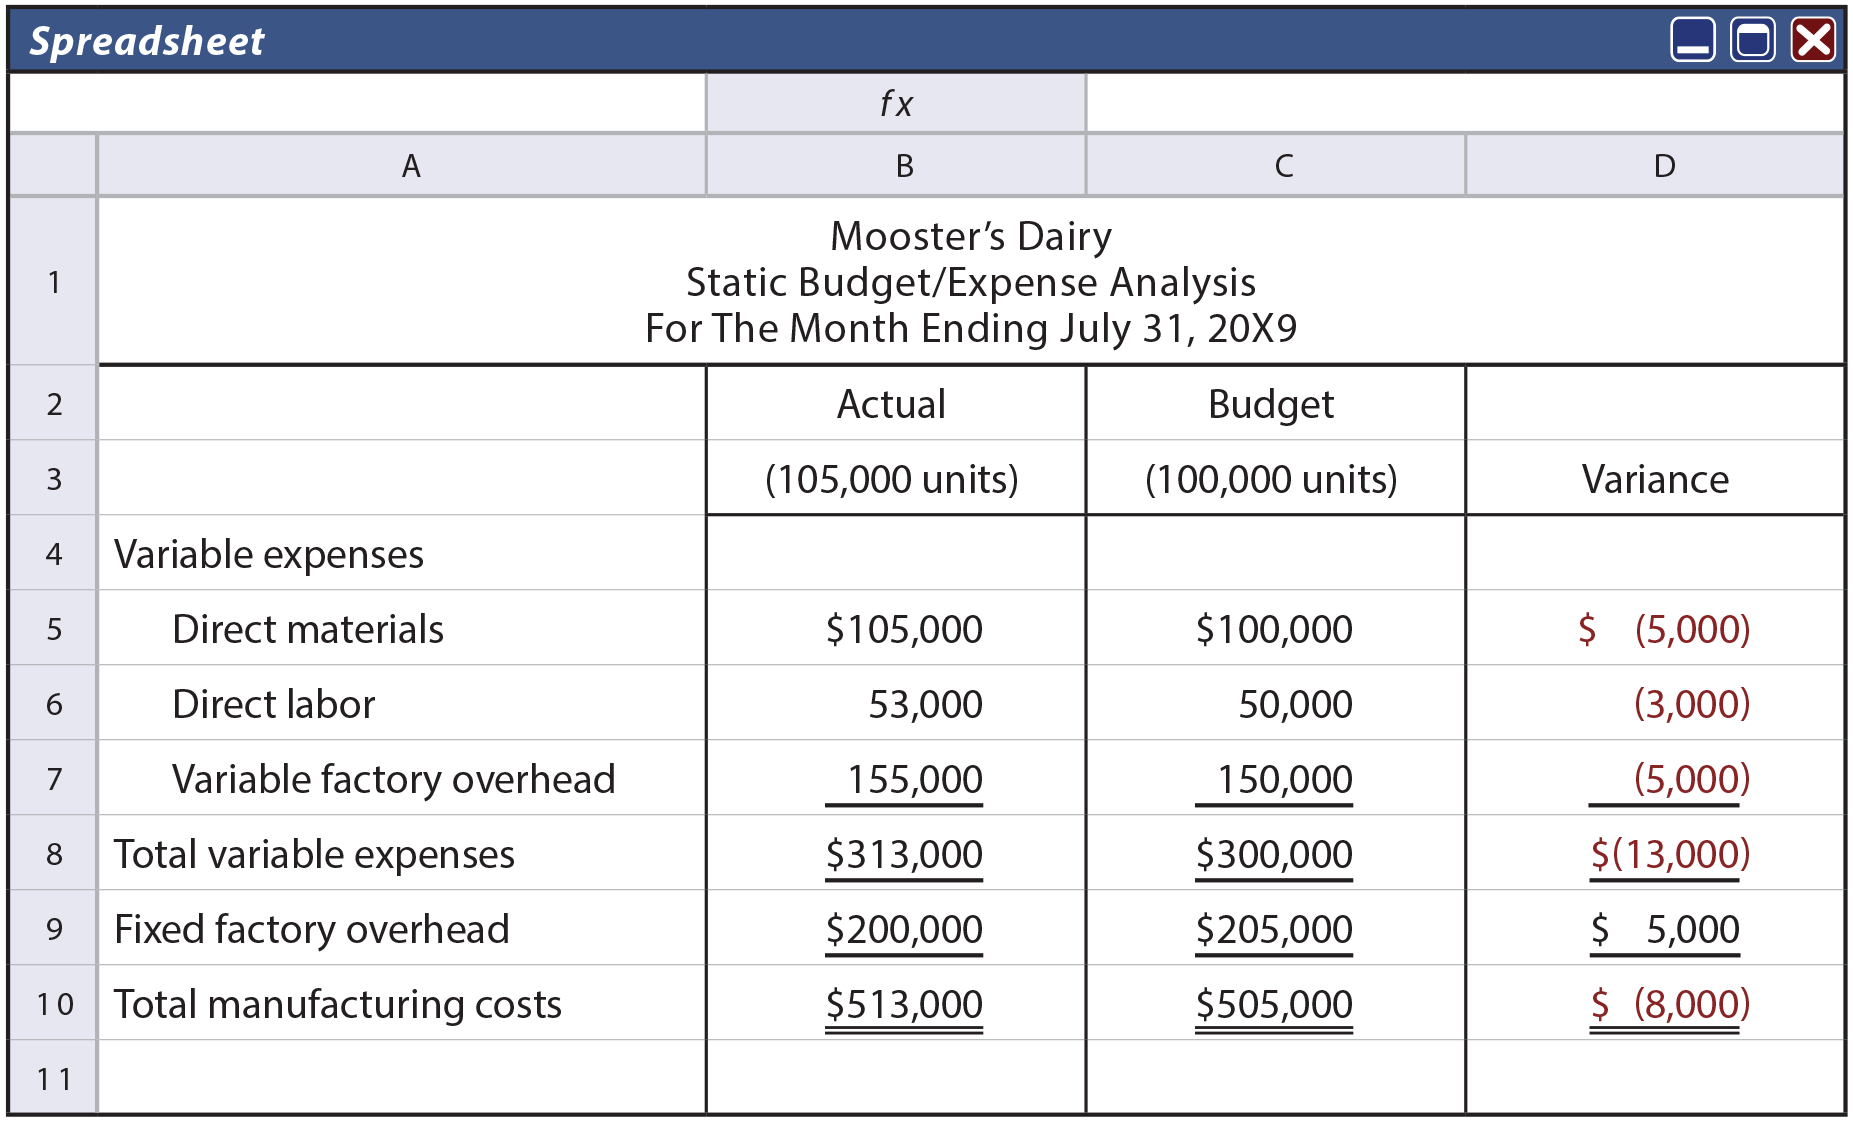 Mooster's Dairy Static Budget